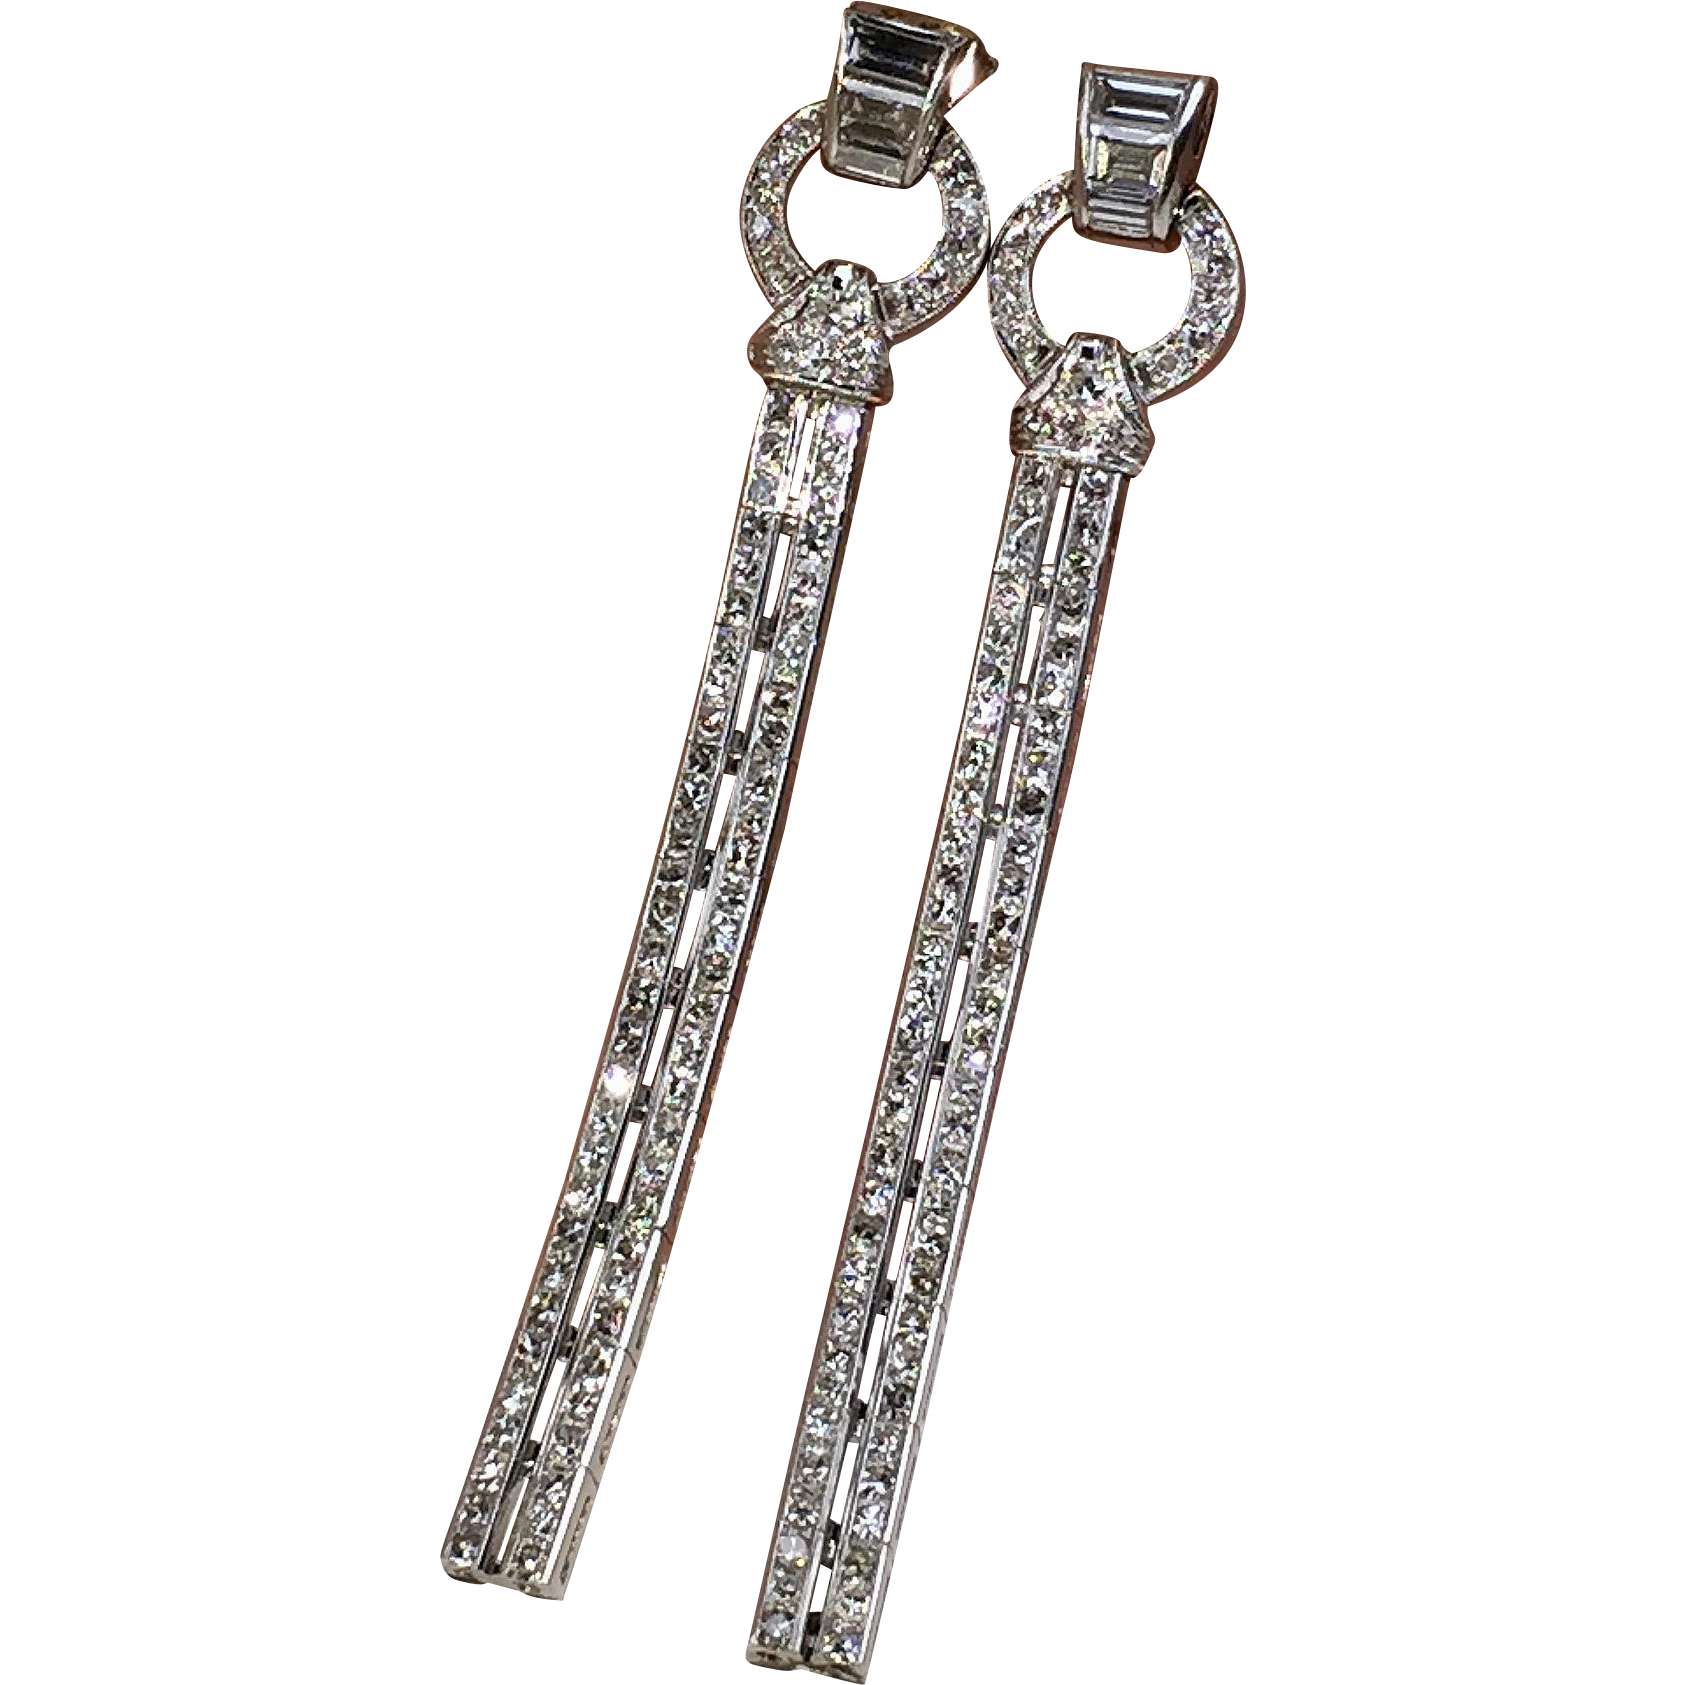 Magnificent Platinum ART DECO Diamond Drop Earrings from